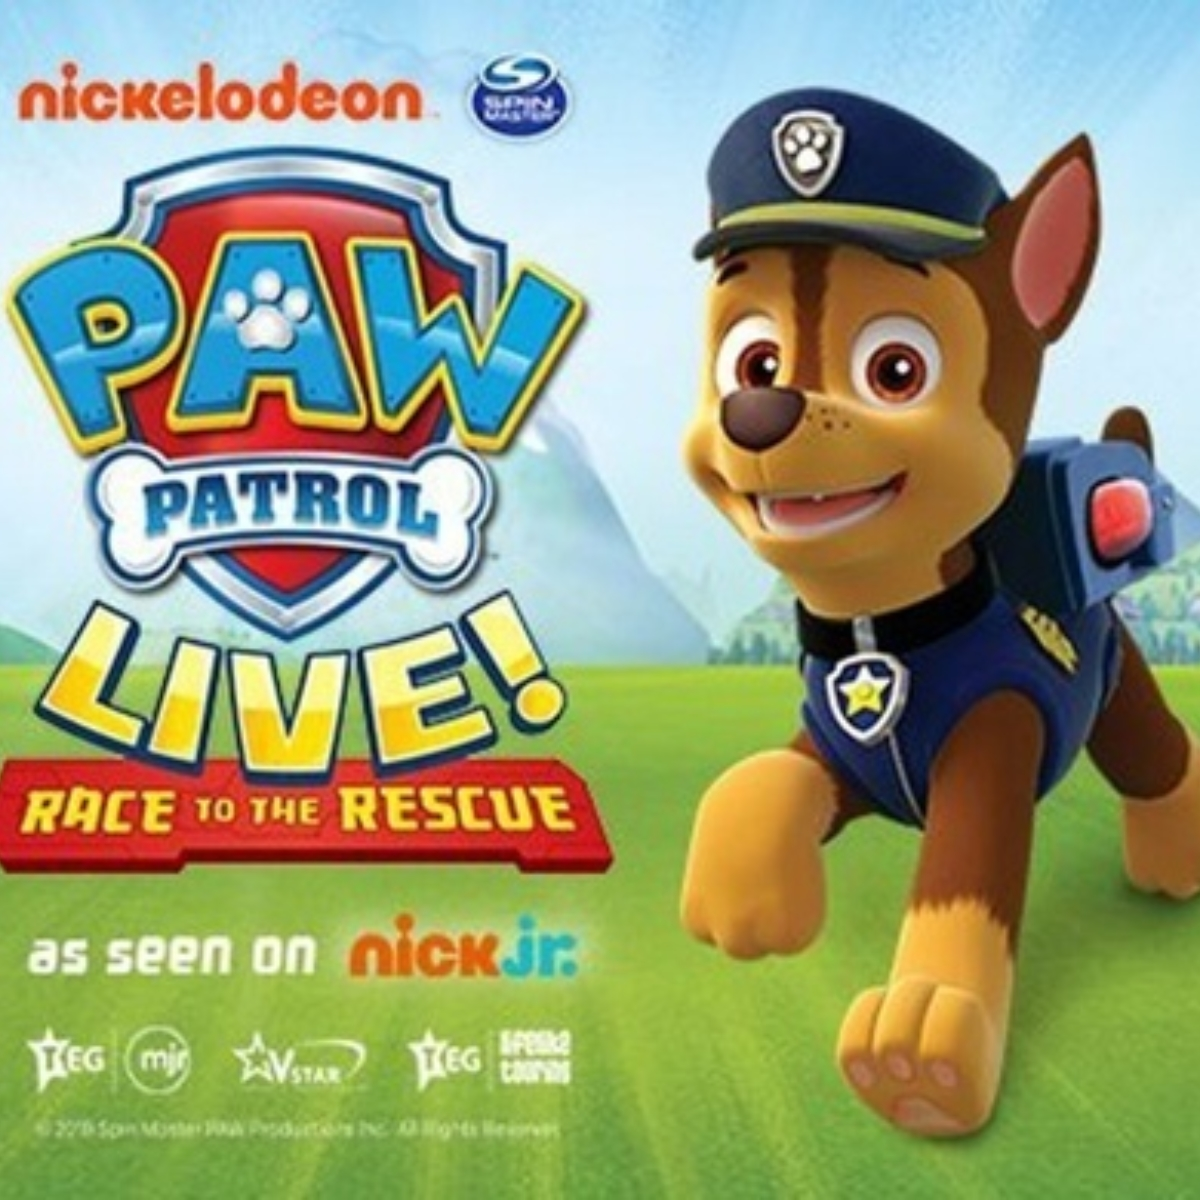 PAW PATROL LIVE! - Race to the Rescue (Llandudno) Images